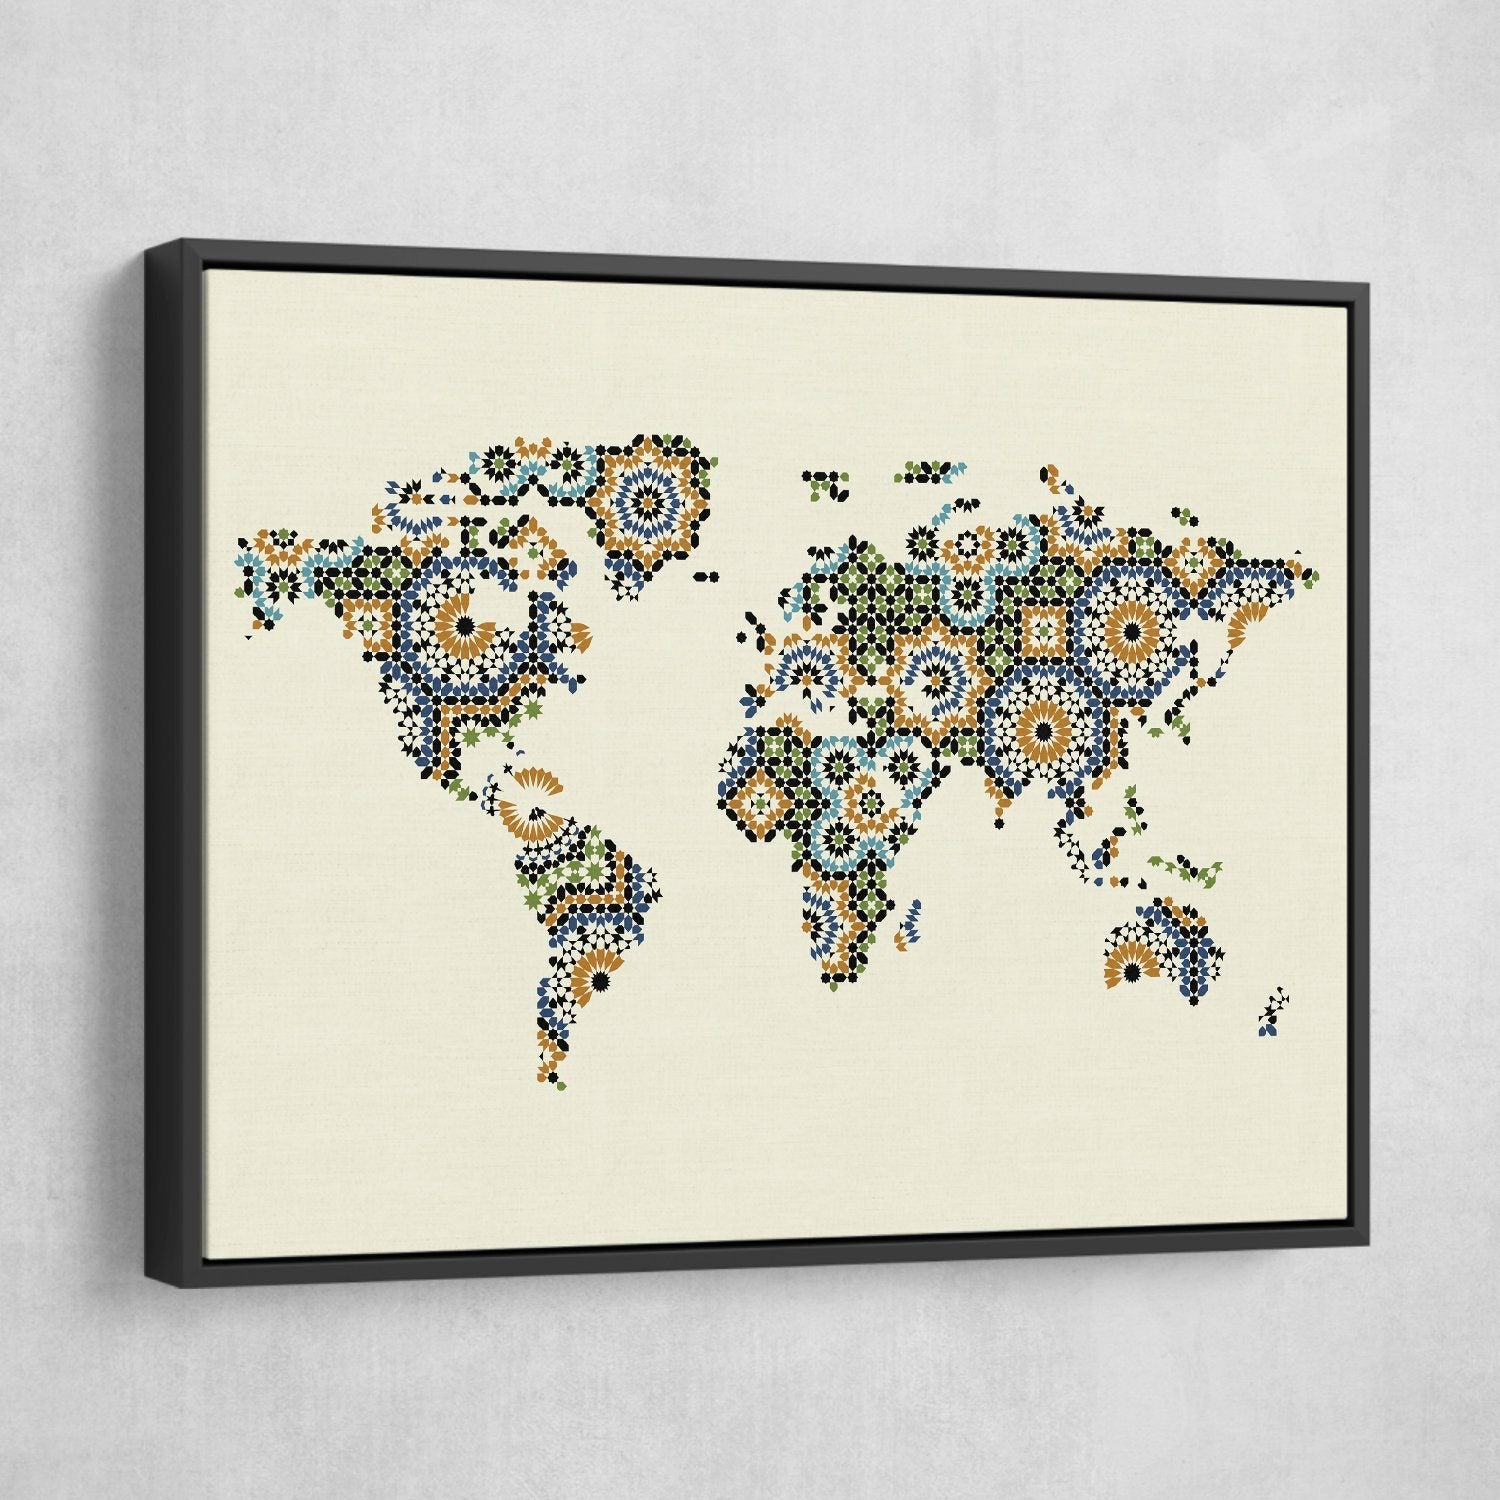 Morocco Mosaic World Map canvas art